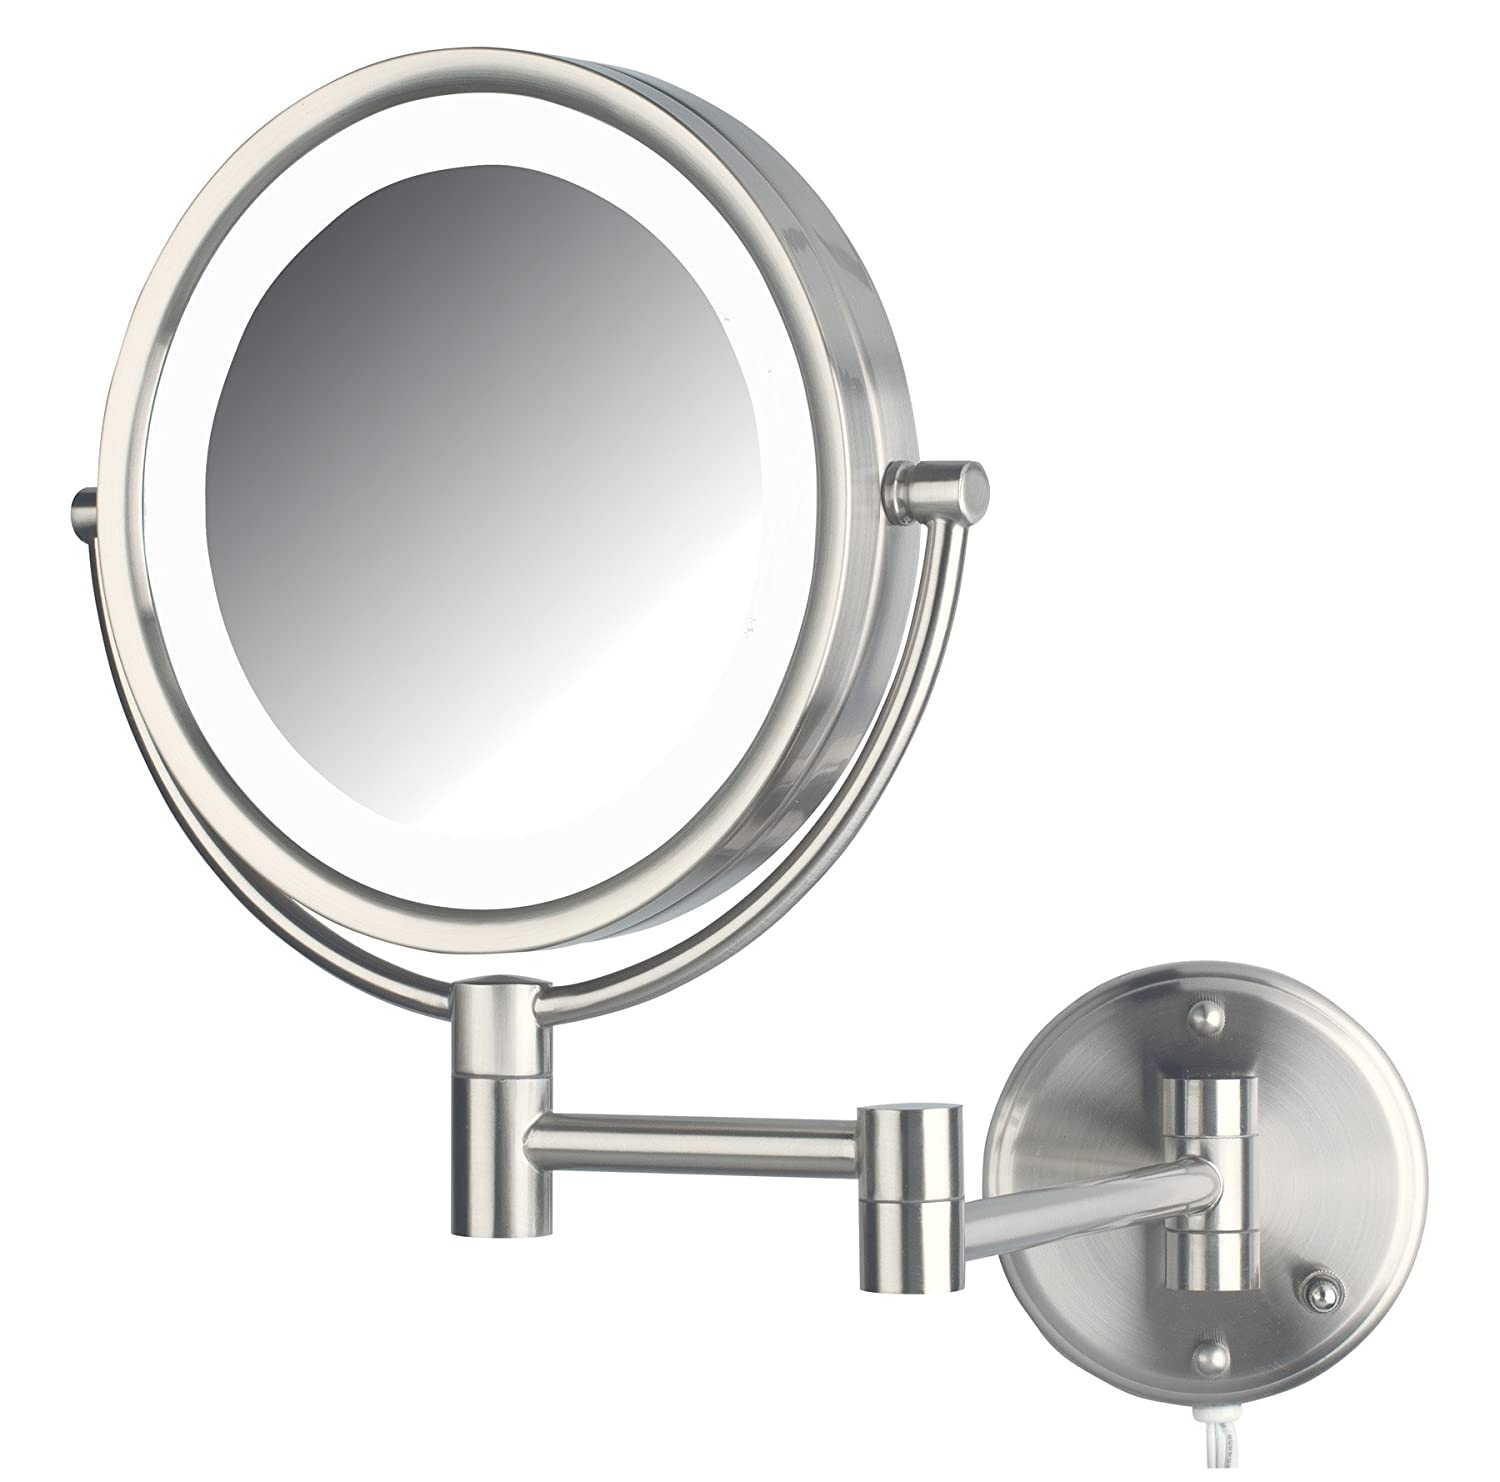 Amazon.com: Jerdon HL88NL 8.5 Inch LED Lighted Wall Mount Makeup Mirror  With 8x Magnification, Nickel Finish: Beauty